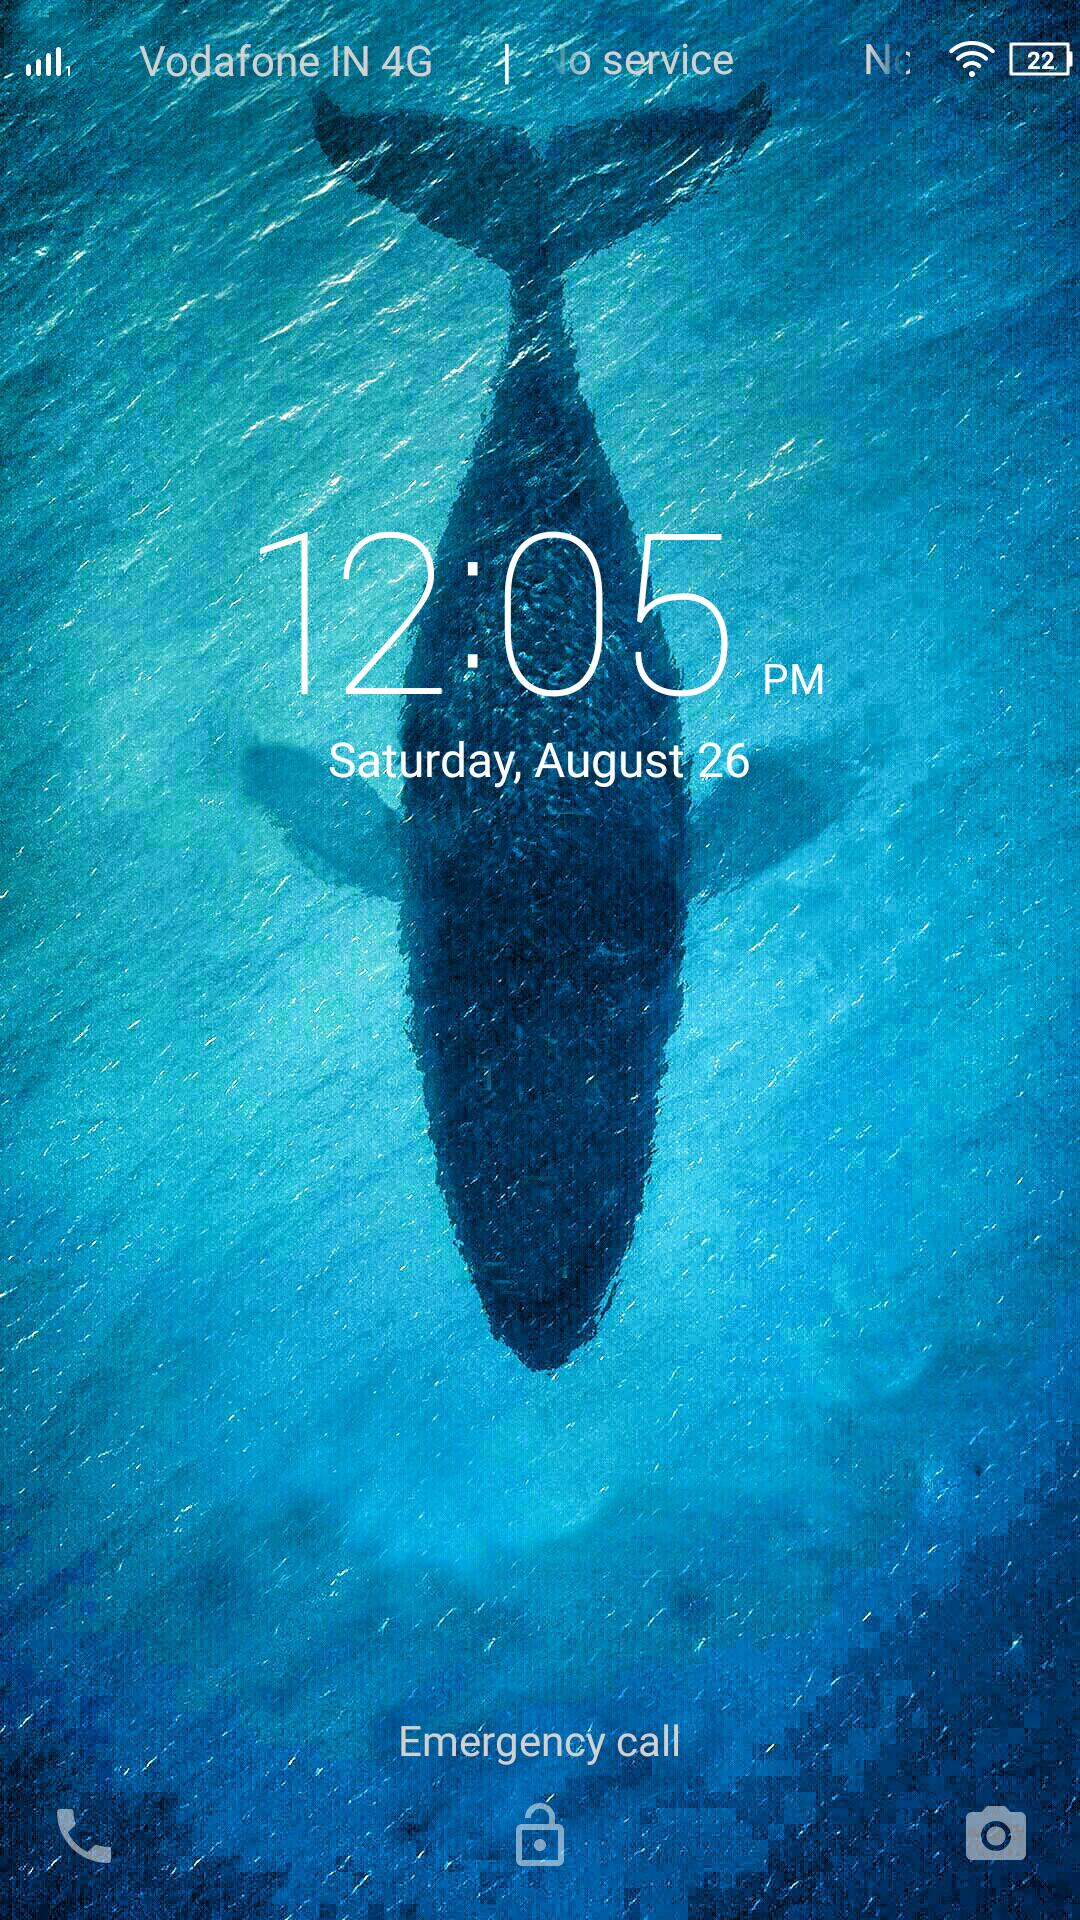 Blue Whale Live Wallpaper For Android Apk Download